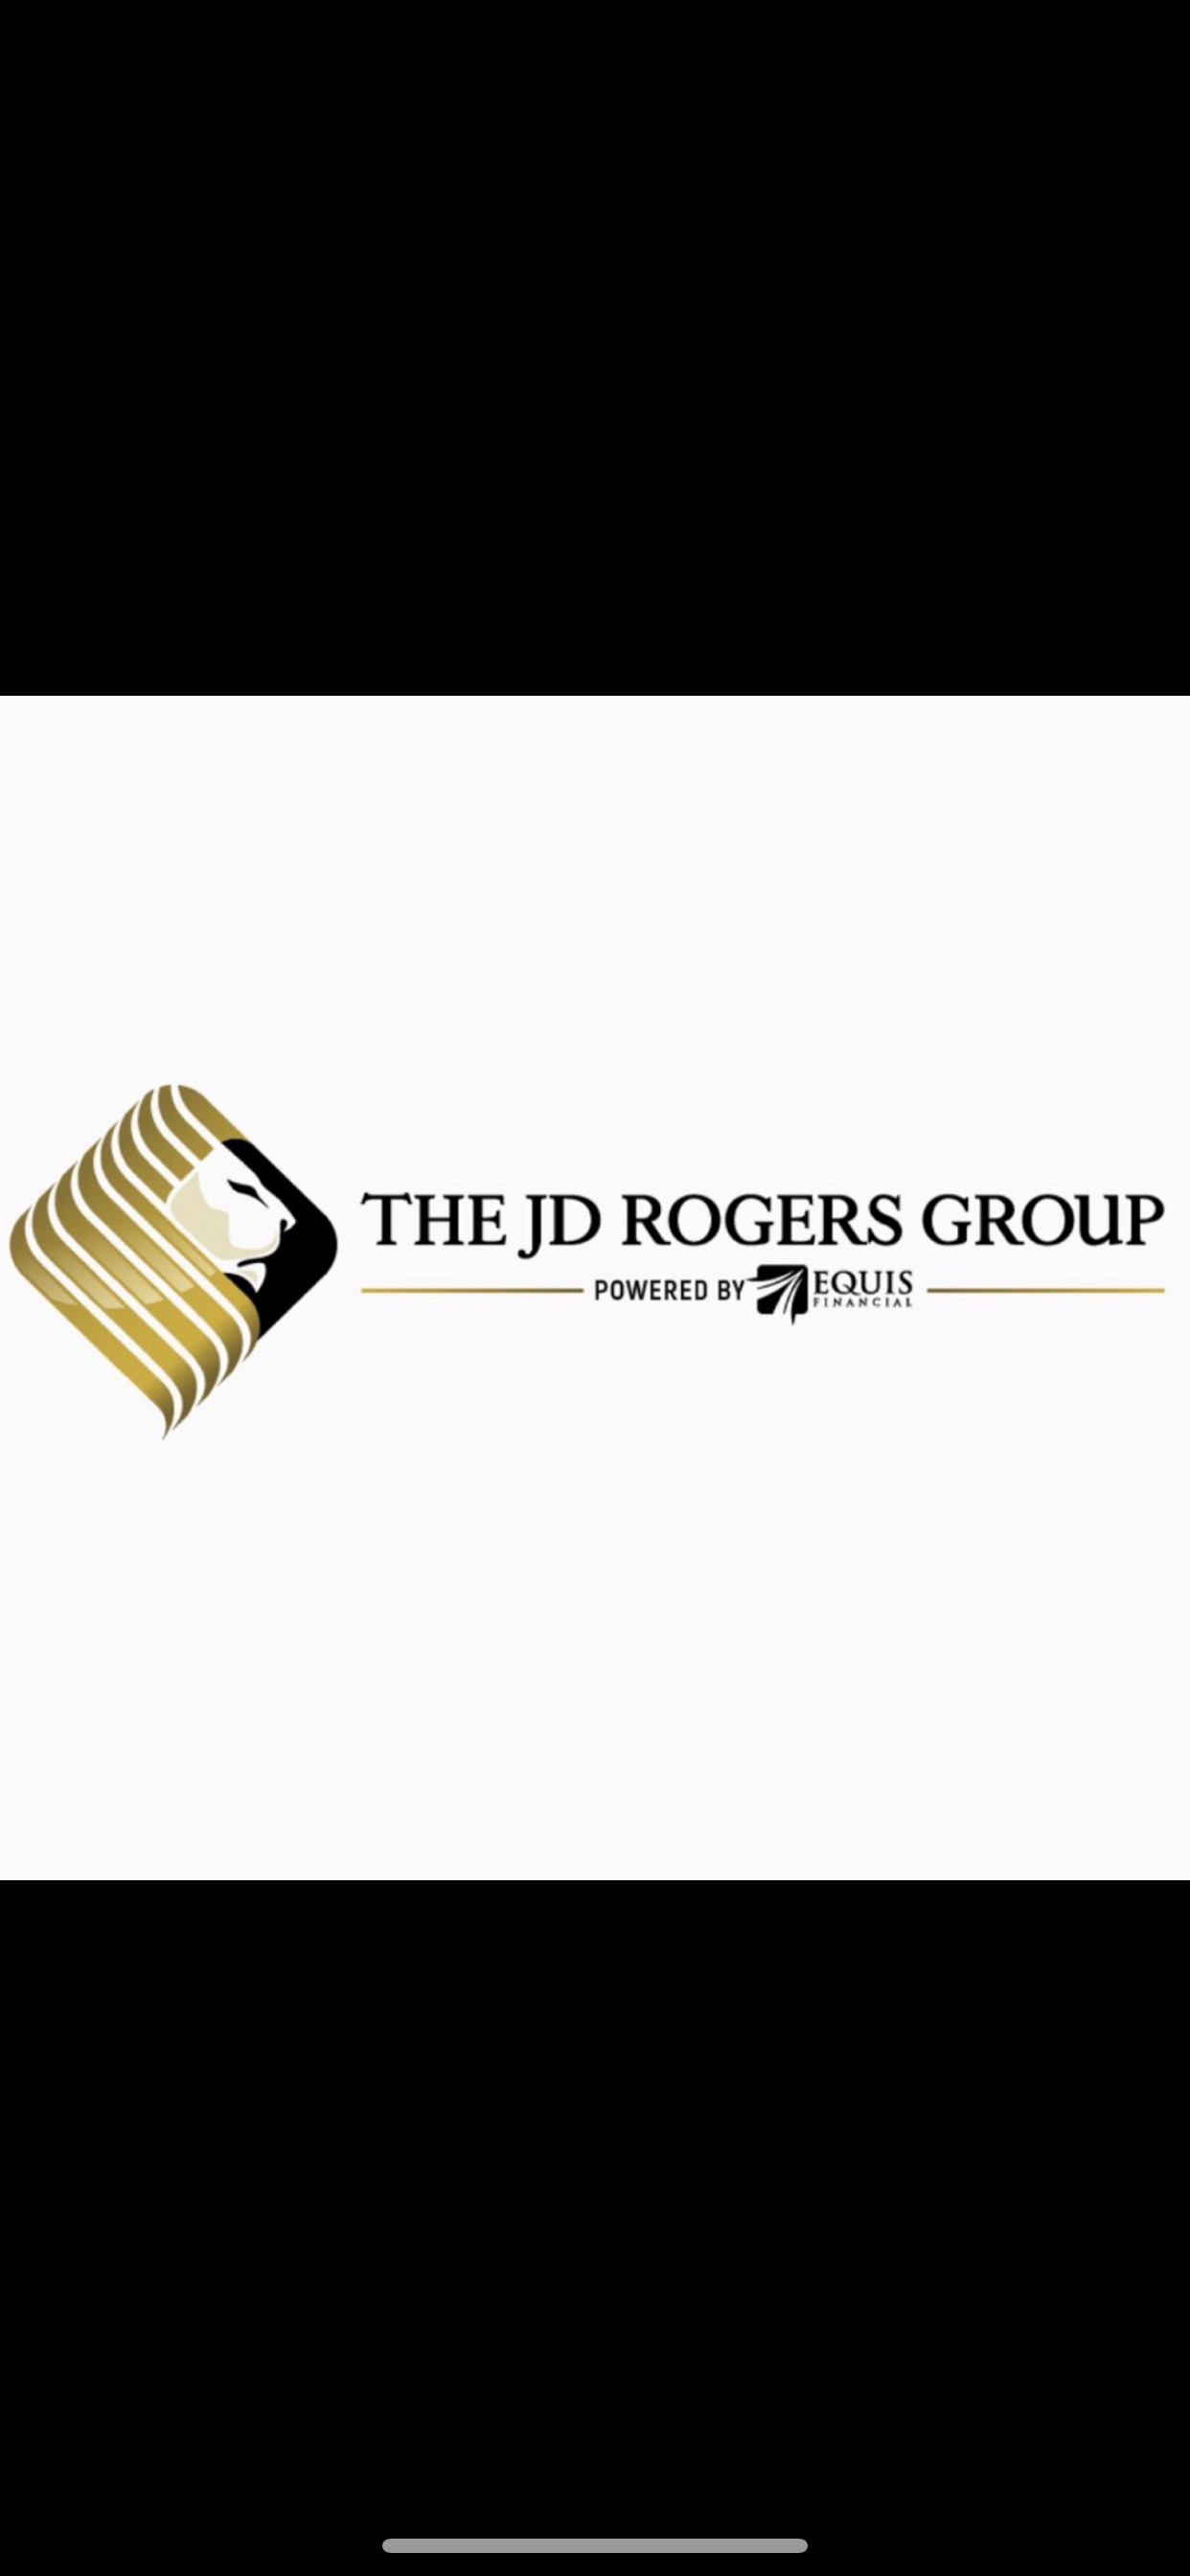 The JD Rogers Group logo